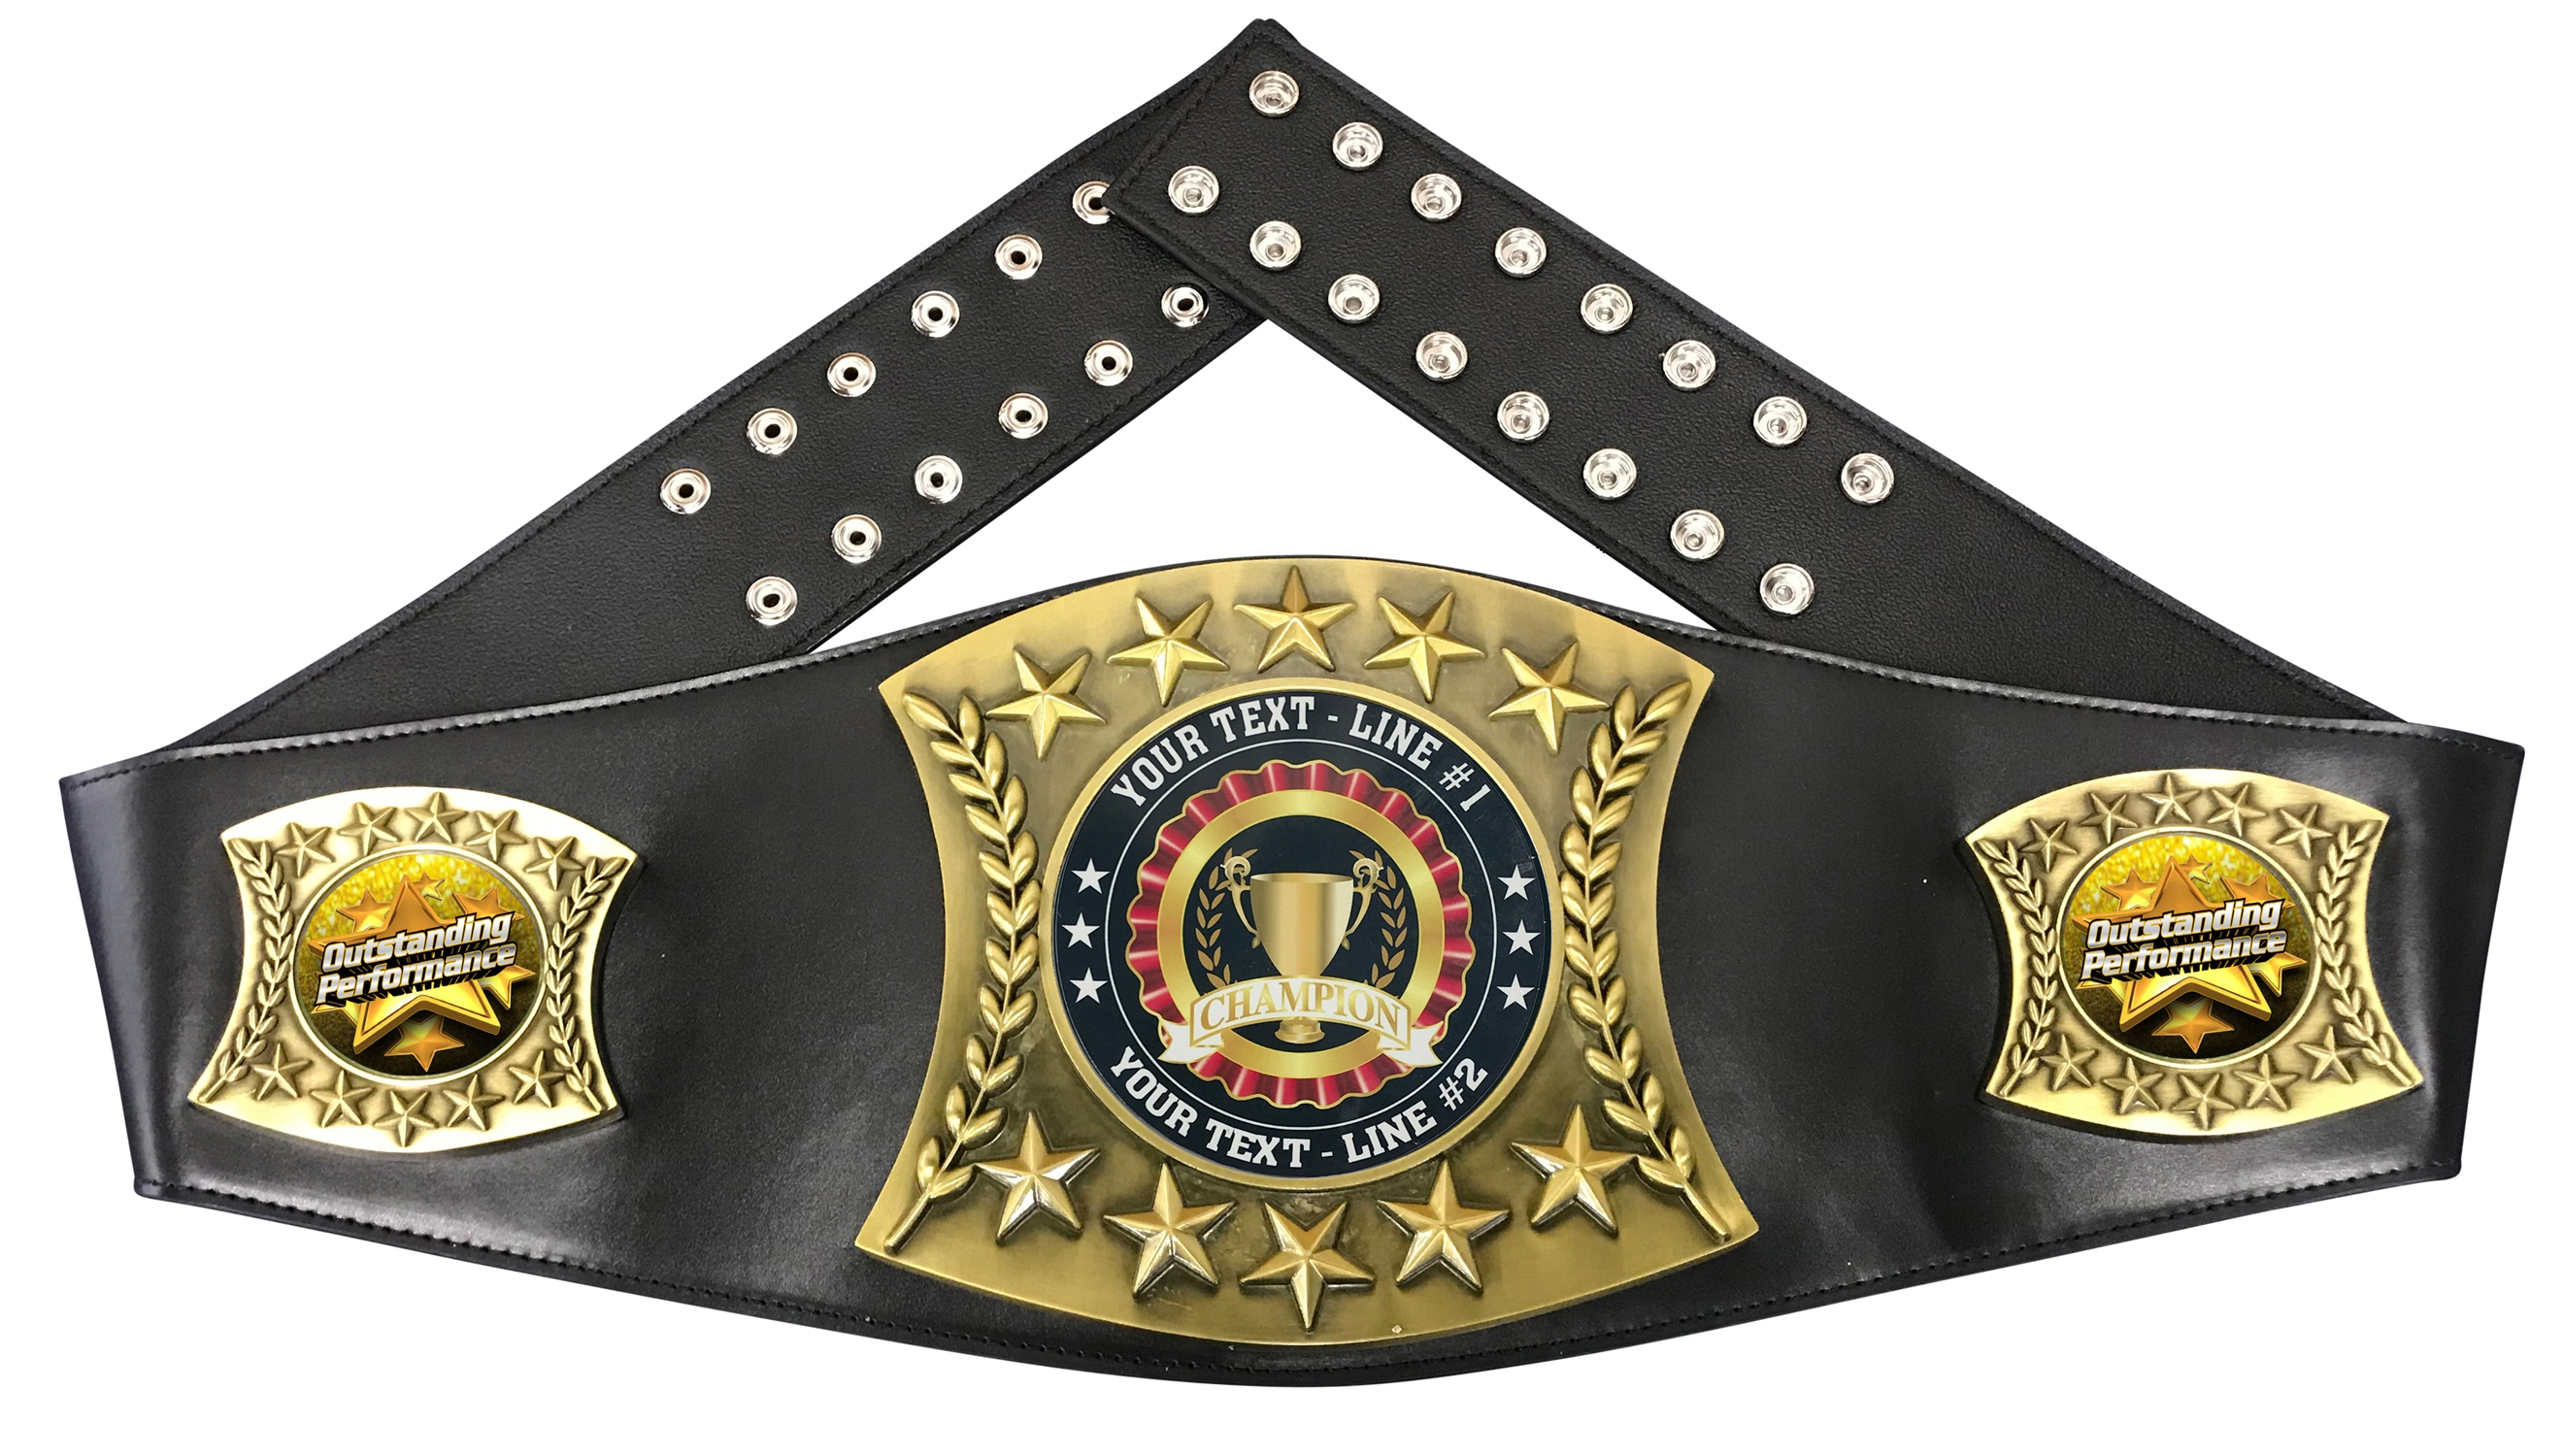 Outstanding Performance Personalized Championship Belt